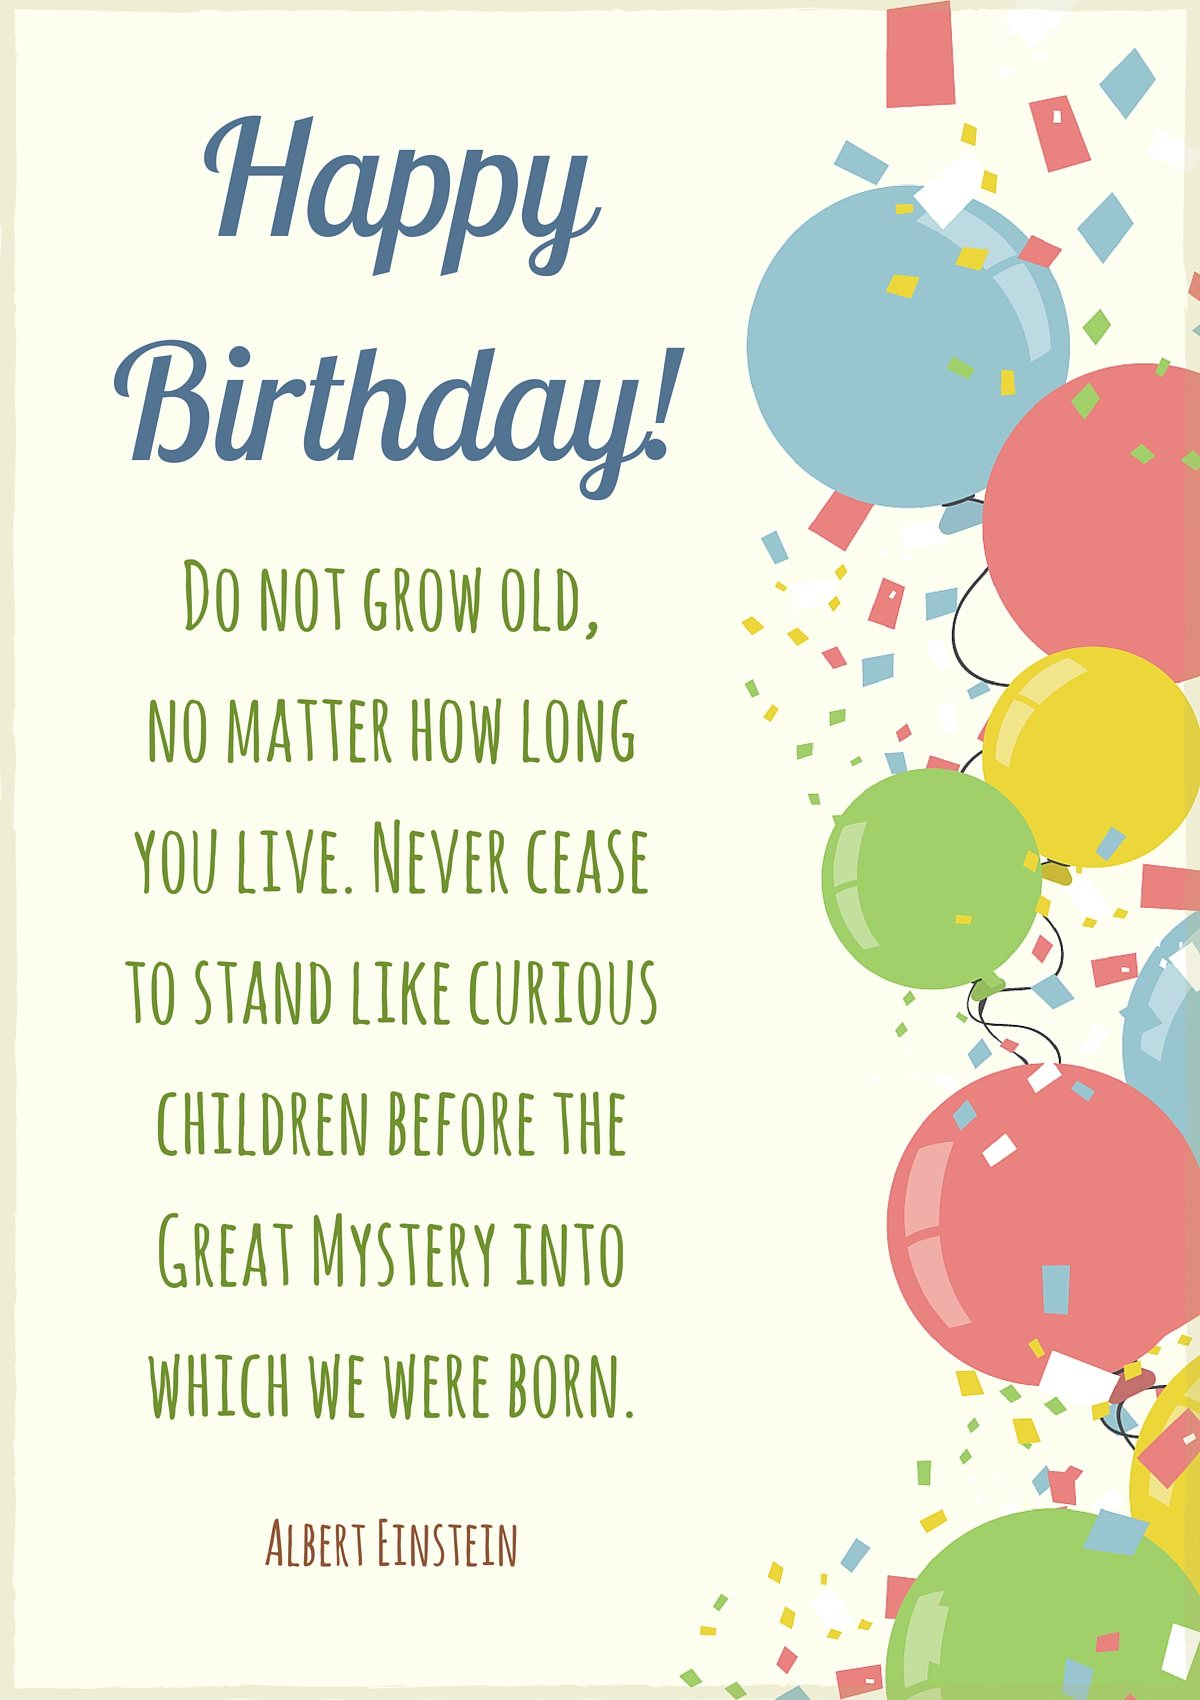 happy birthday long quotes ; Happy-Birthday-Quote-by-Albert-Einstein-on-card-with-balloons